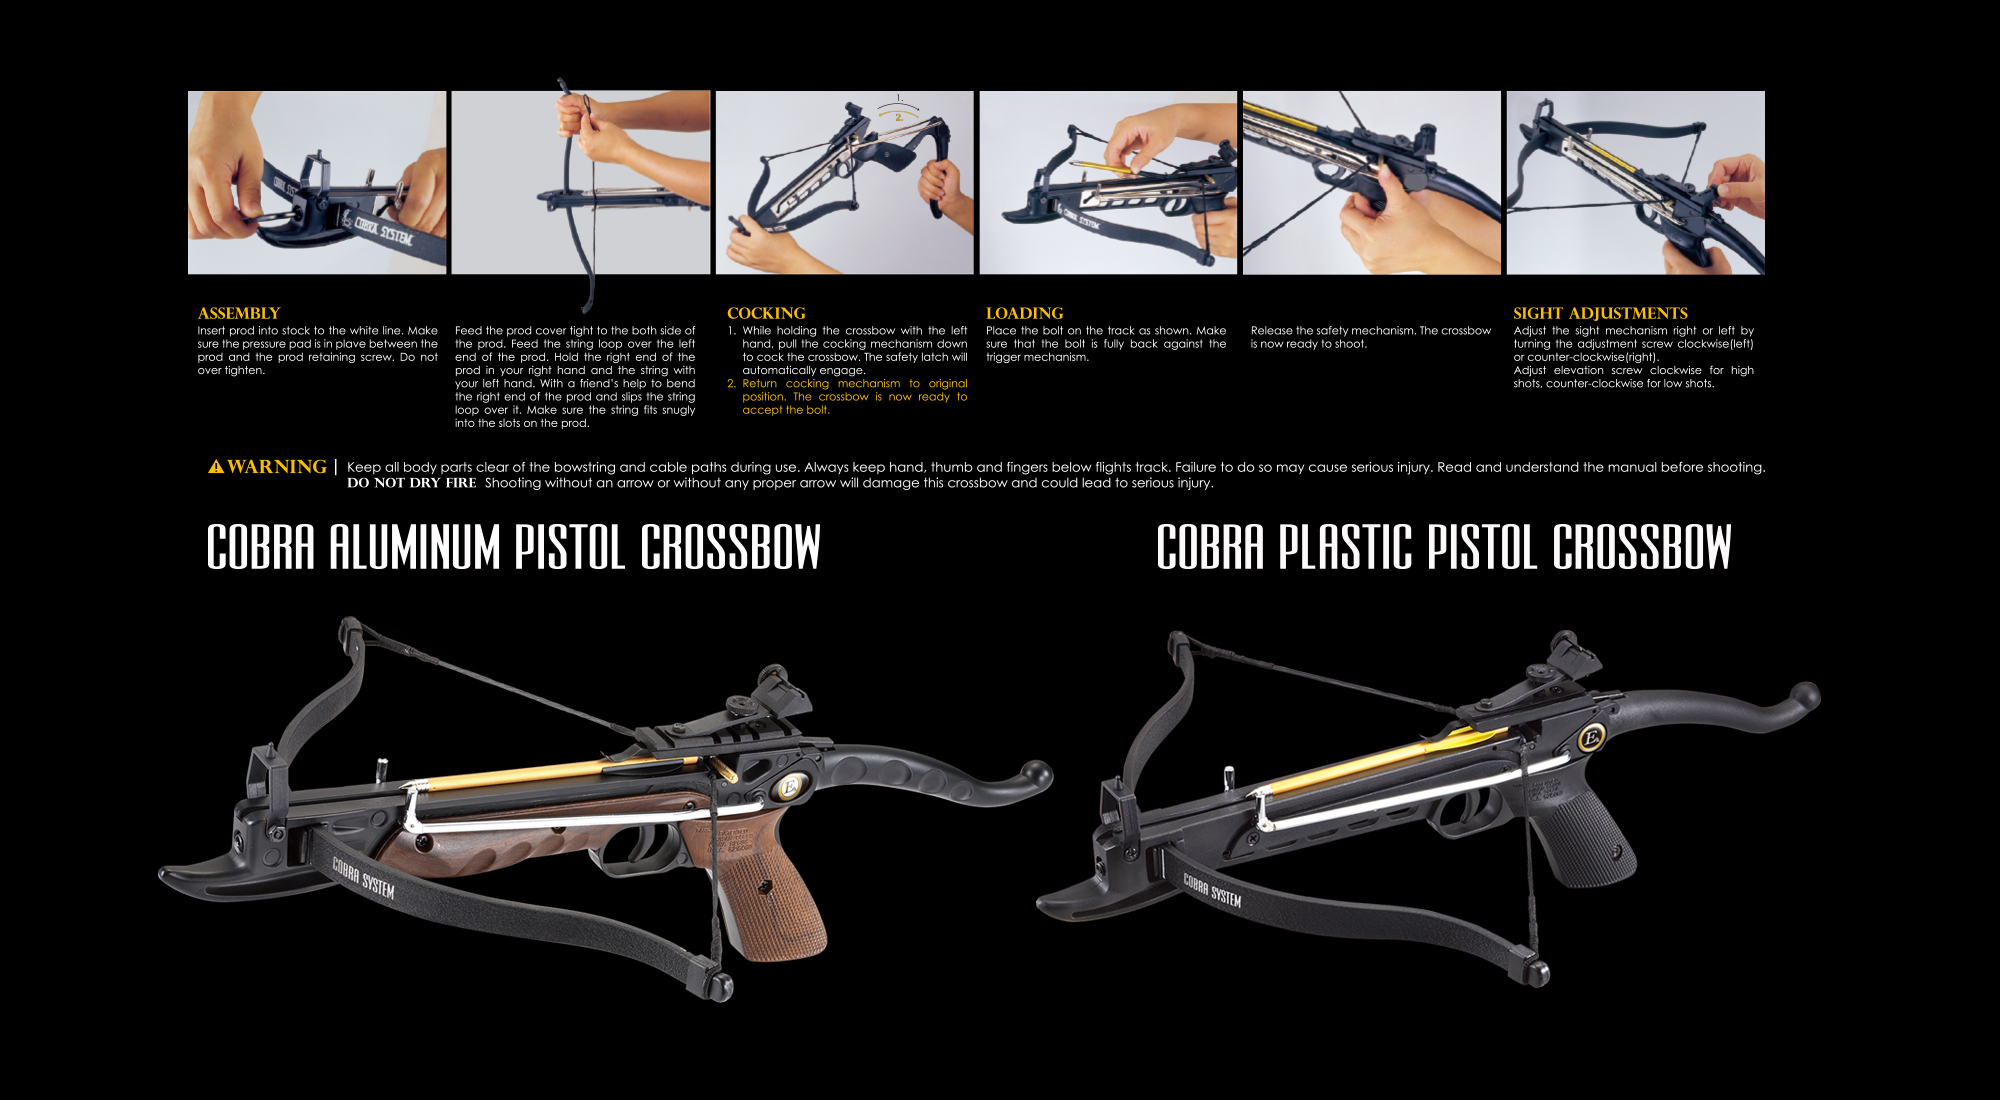 PISTOL CROSSBOW MANUAL